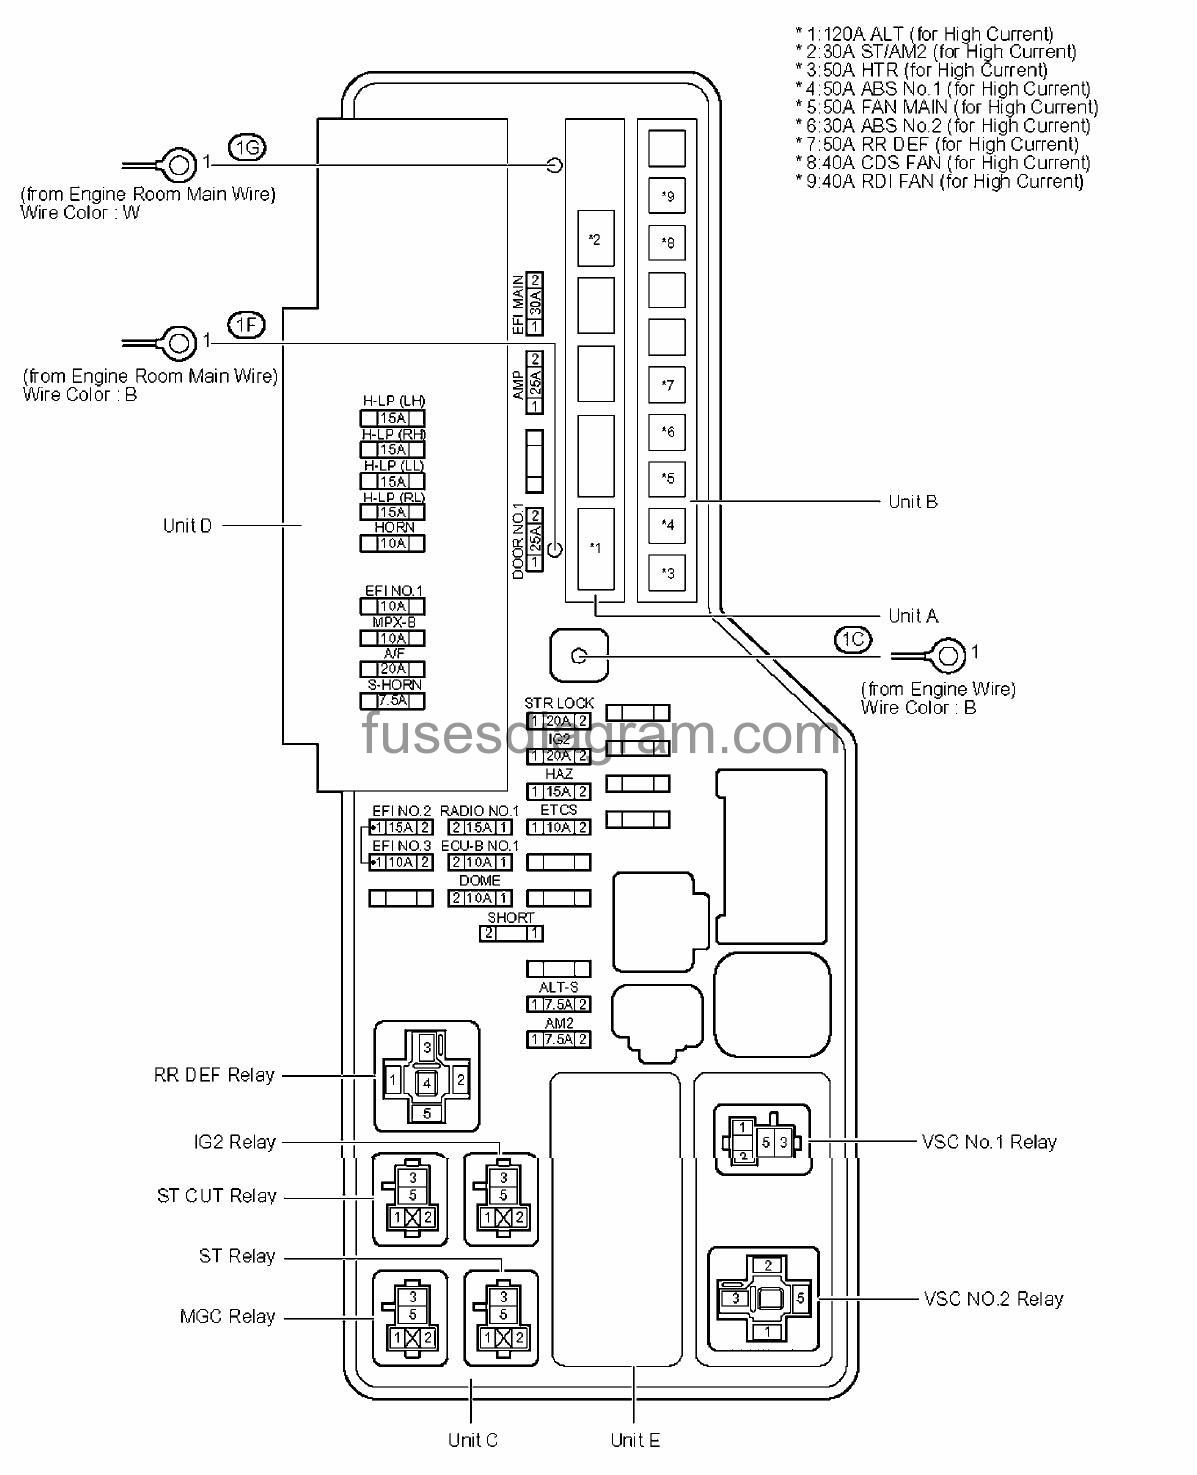 08 Impala Fuse Box Diagram Wiring Libraries 2012 Camry Todays2008 Diagrams